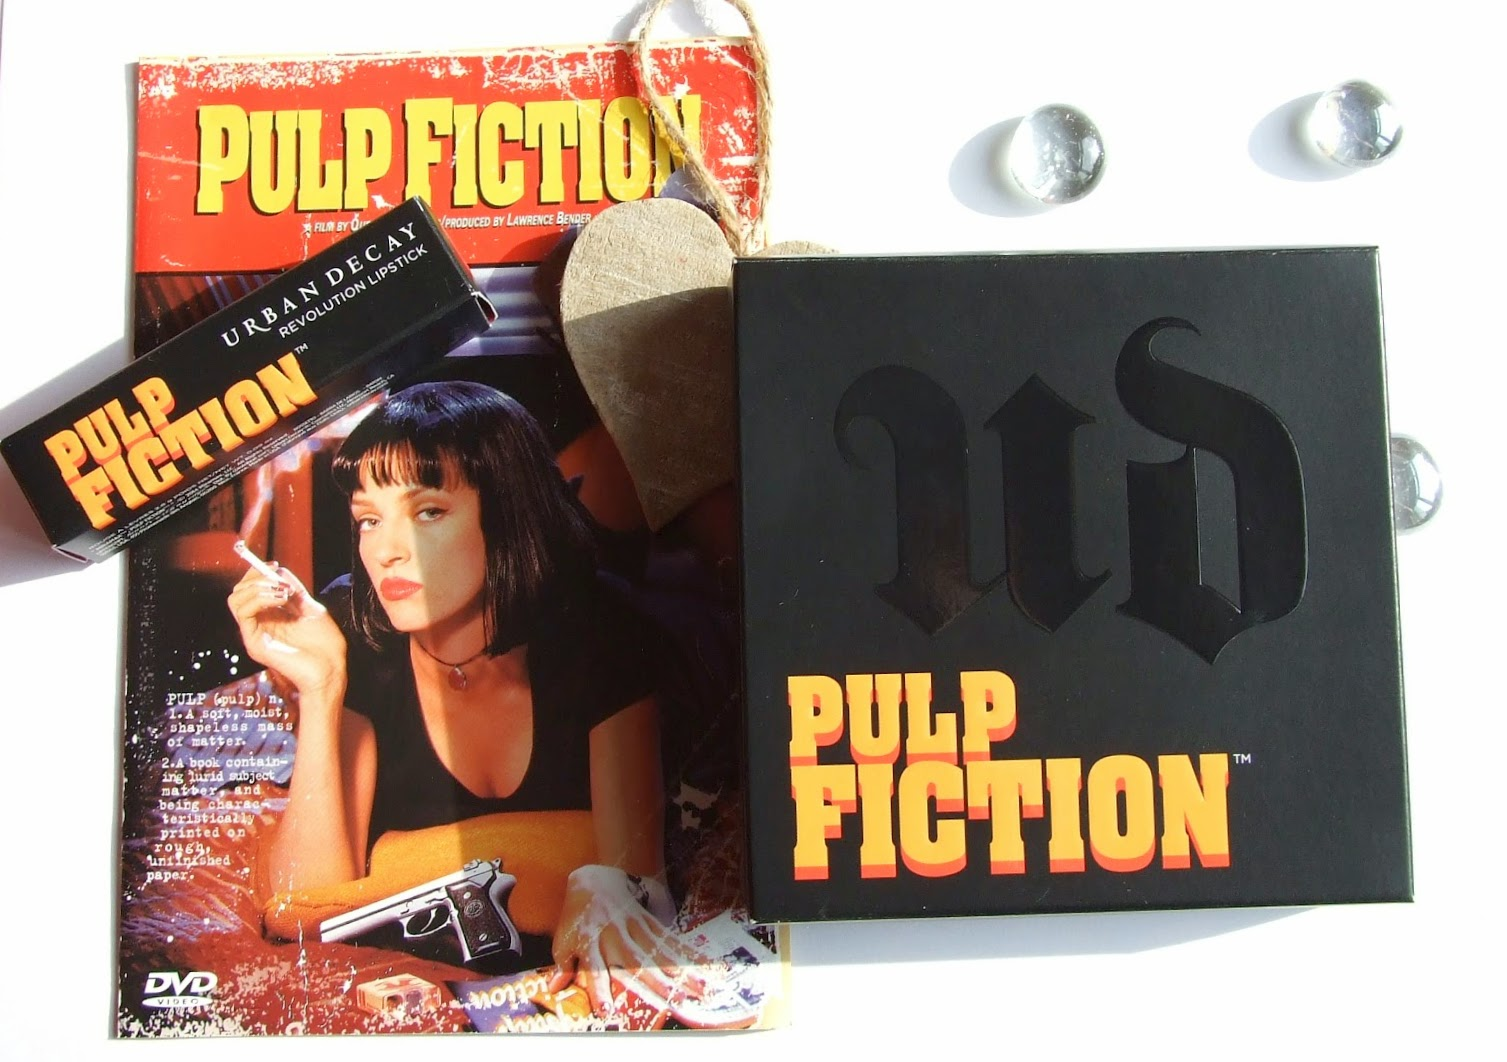 Urban decay pulp fiction collection revolution lipstick swatches mrs mia wallace palette